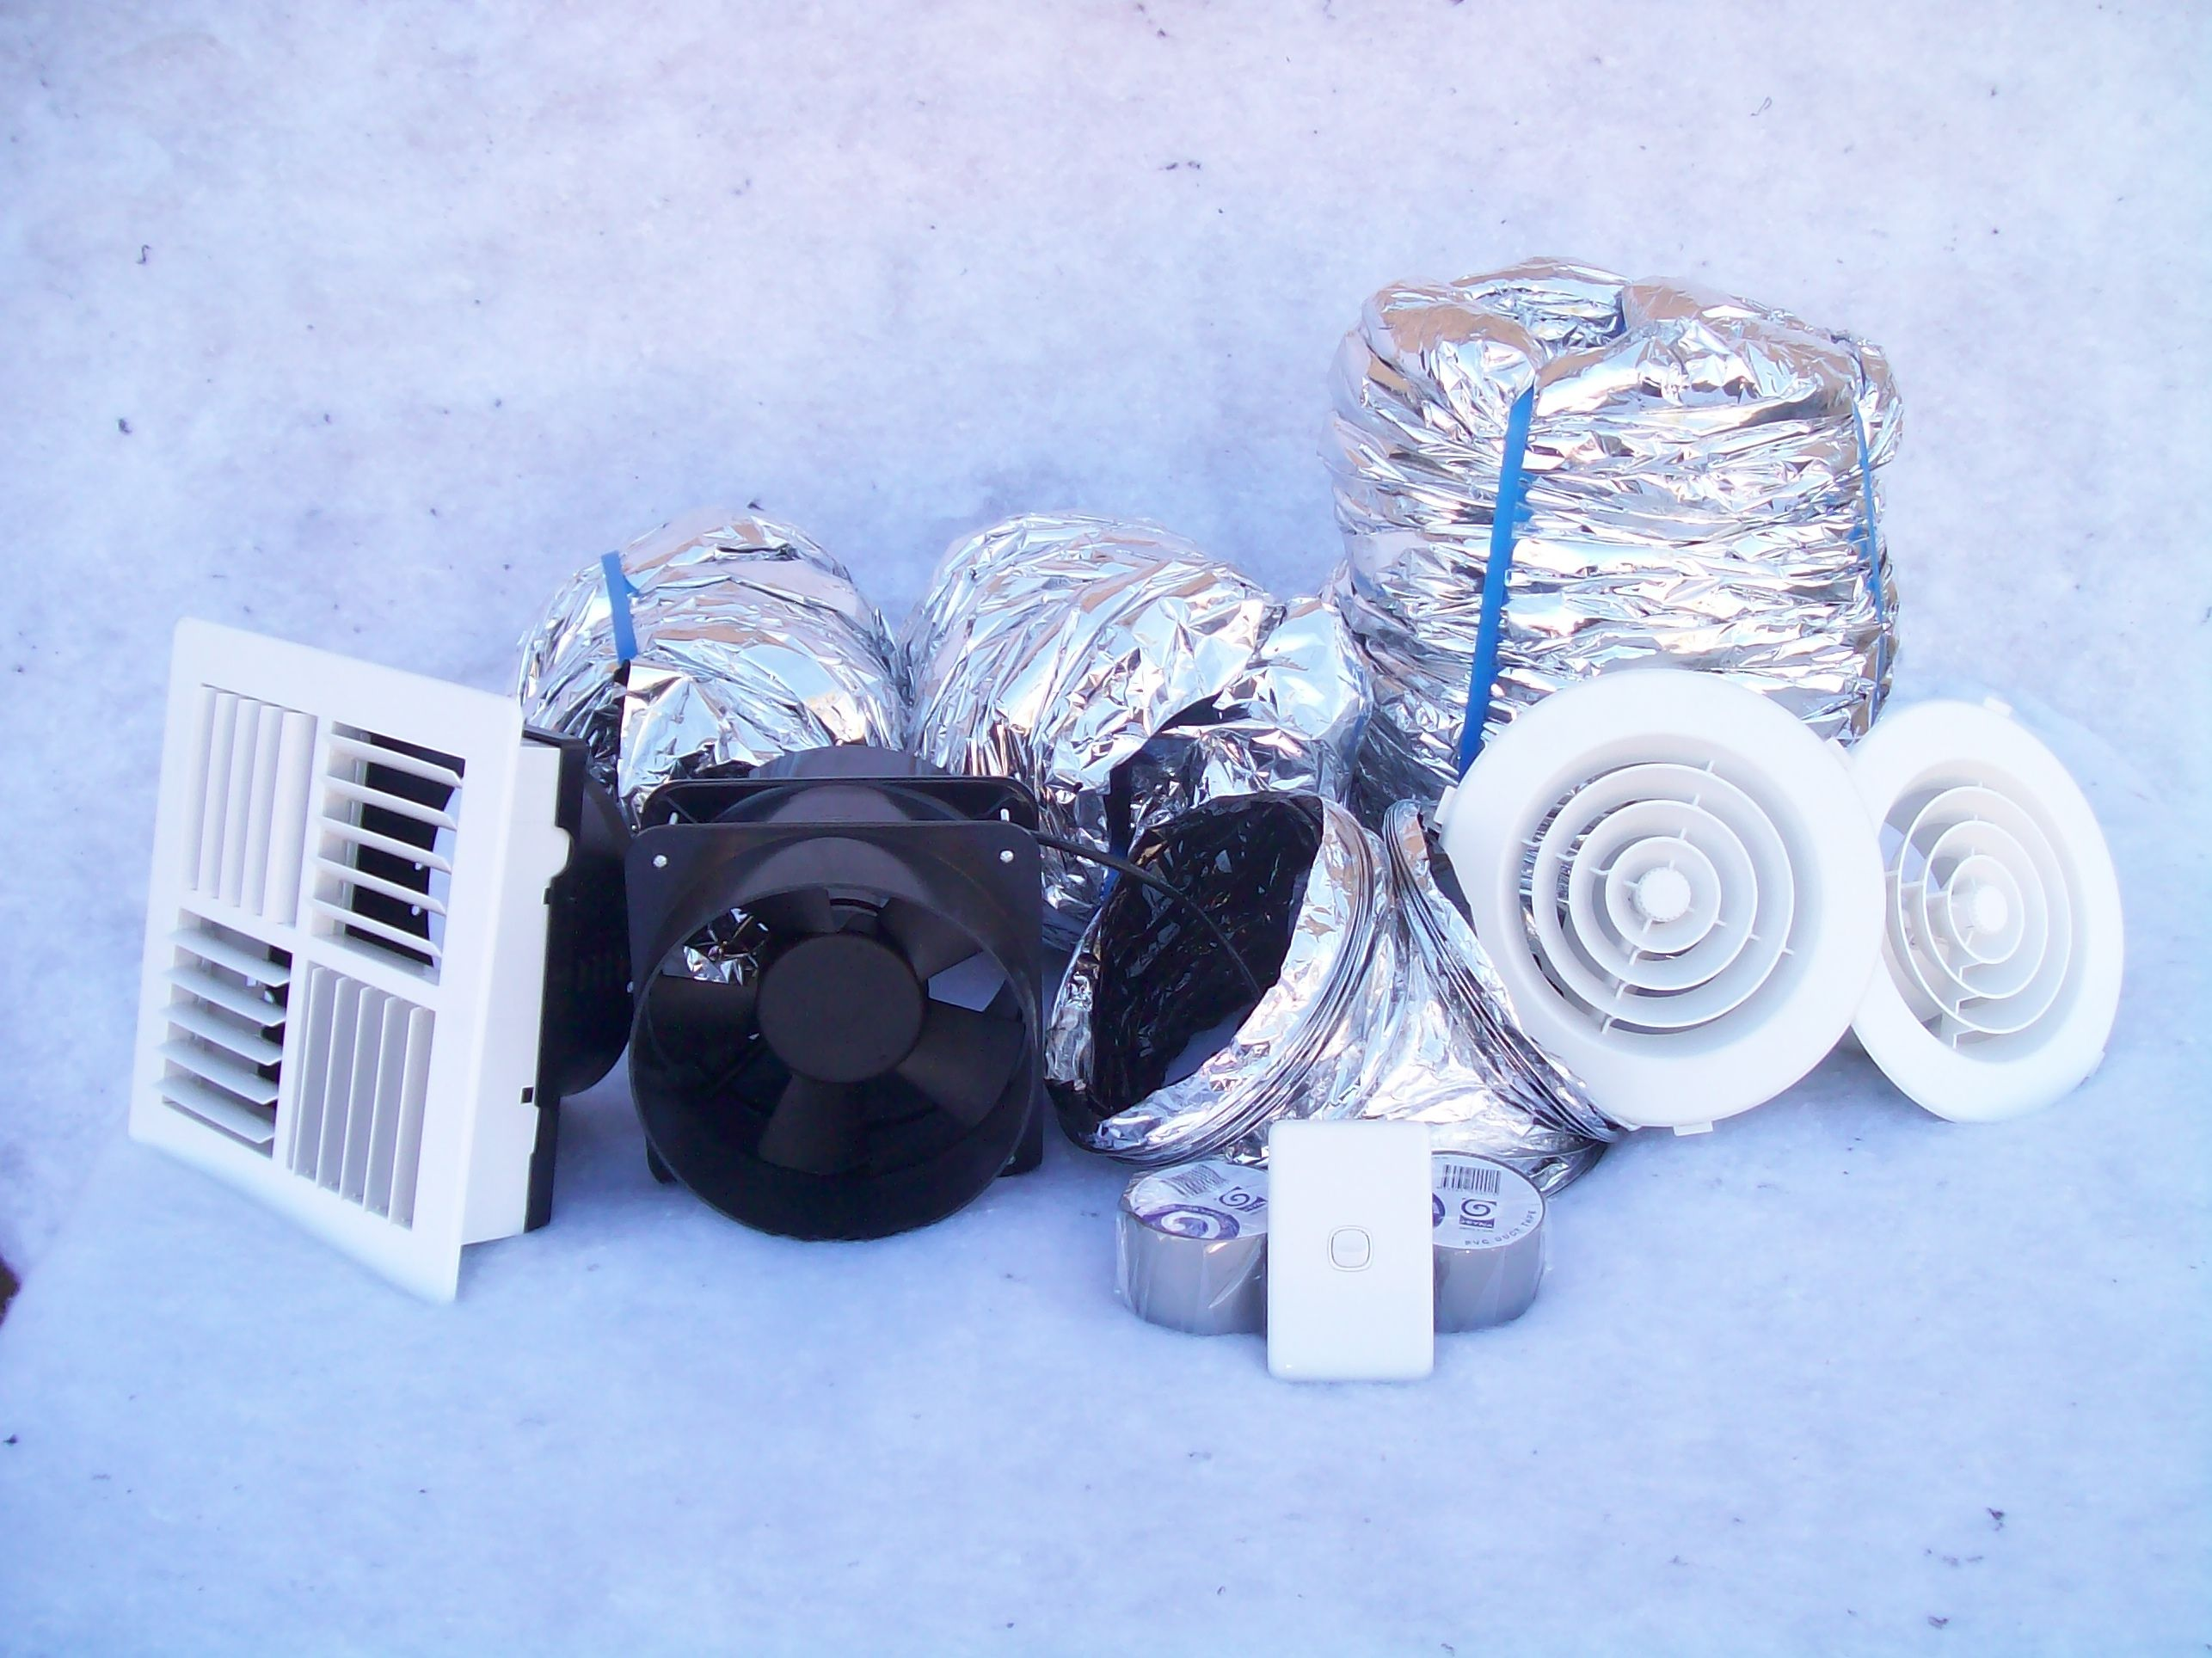 Saturday Savings! Try our duct cleaning special fo only